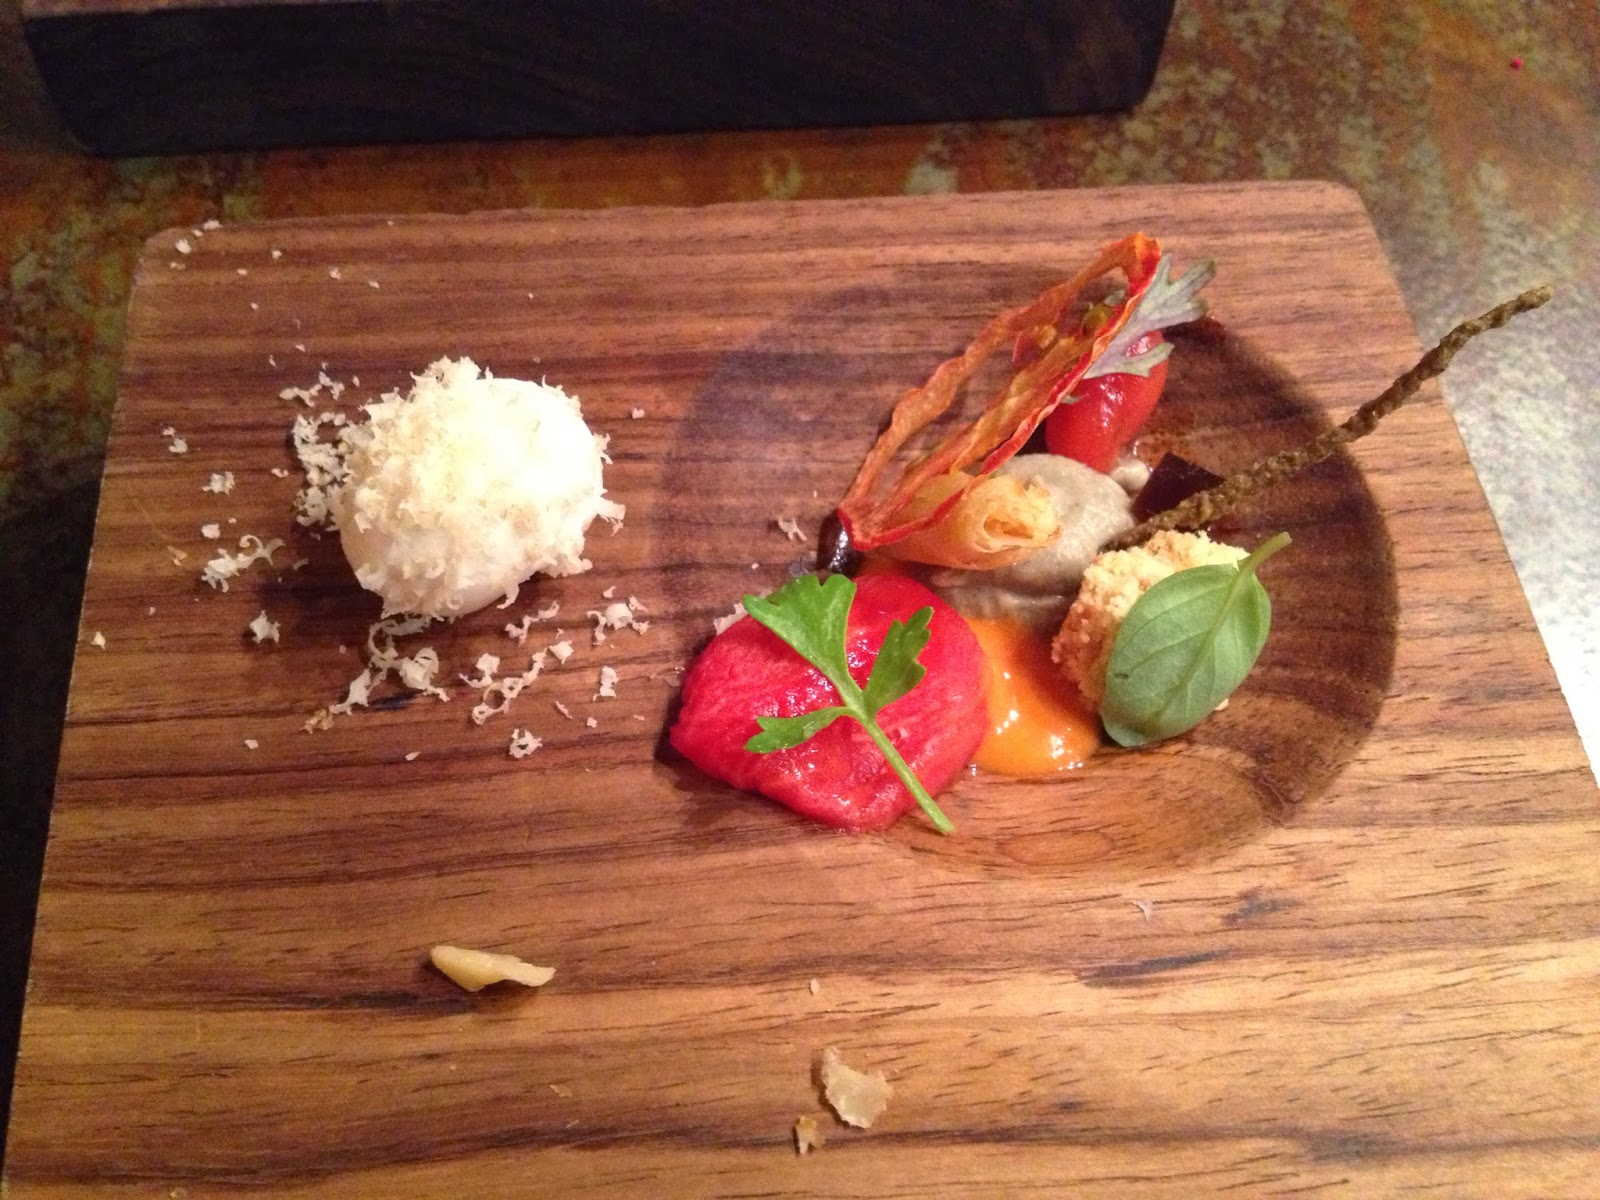 Cape Town - Another amuse-bouche